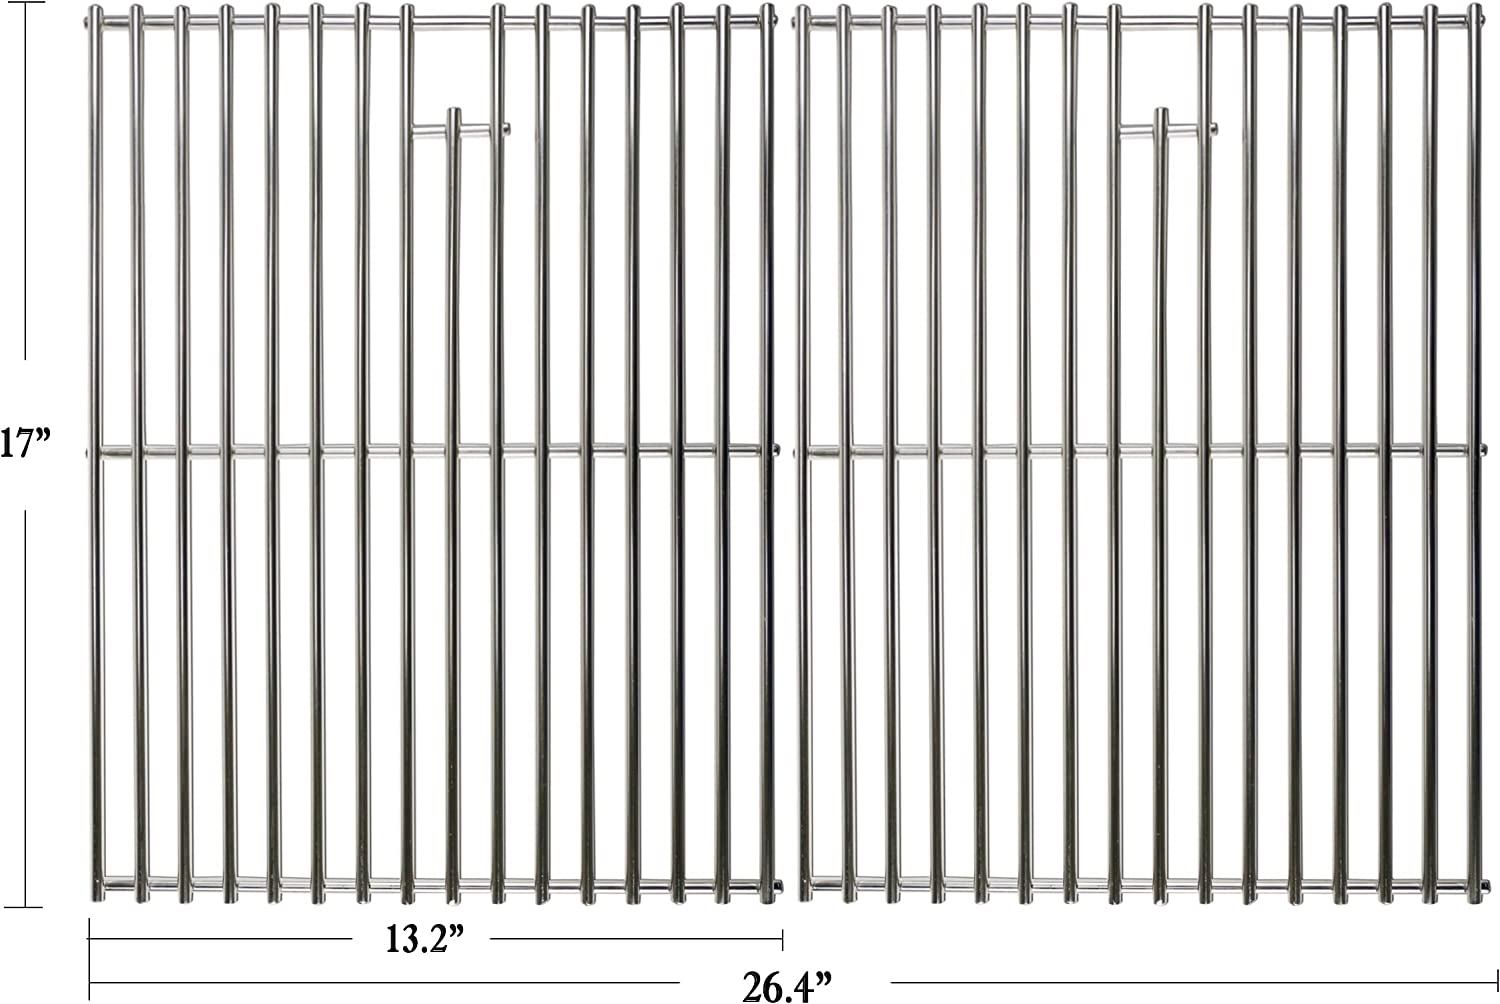 """Hisencn 17 inch Grill Cooking Grates Replacement Parts for Home Depot Nexgrill 720-0830H, 720-0830D, Nexgrill 720-0783E, 720-0783C, Kenmore, Uniflame Gas Grils, 17"""" Stainless Steel Cooking Grids"""